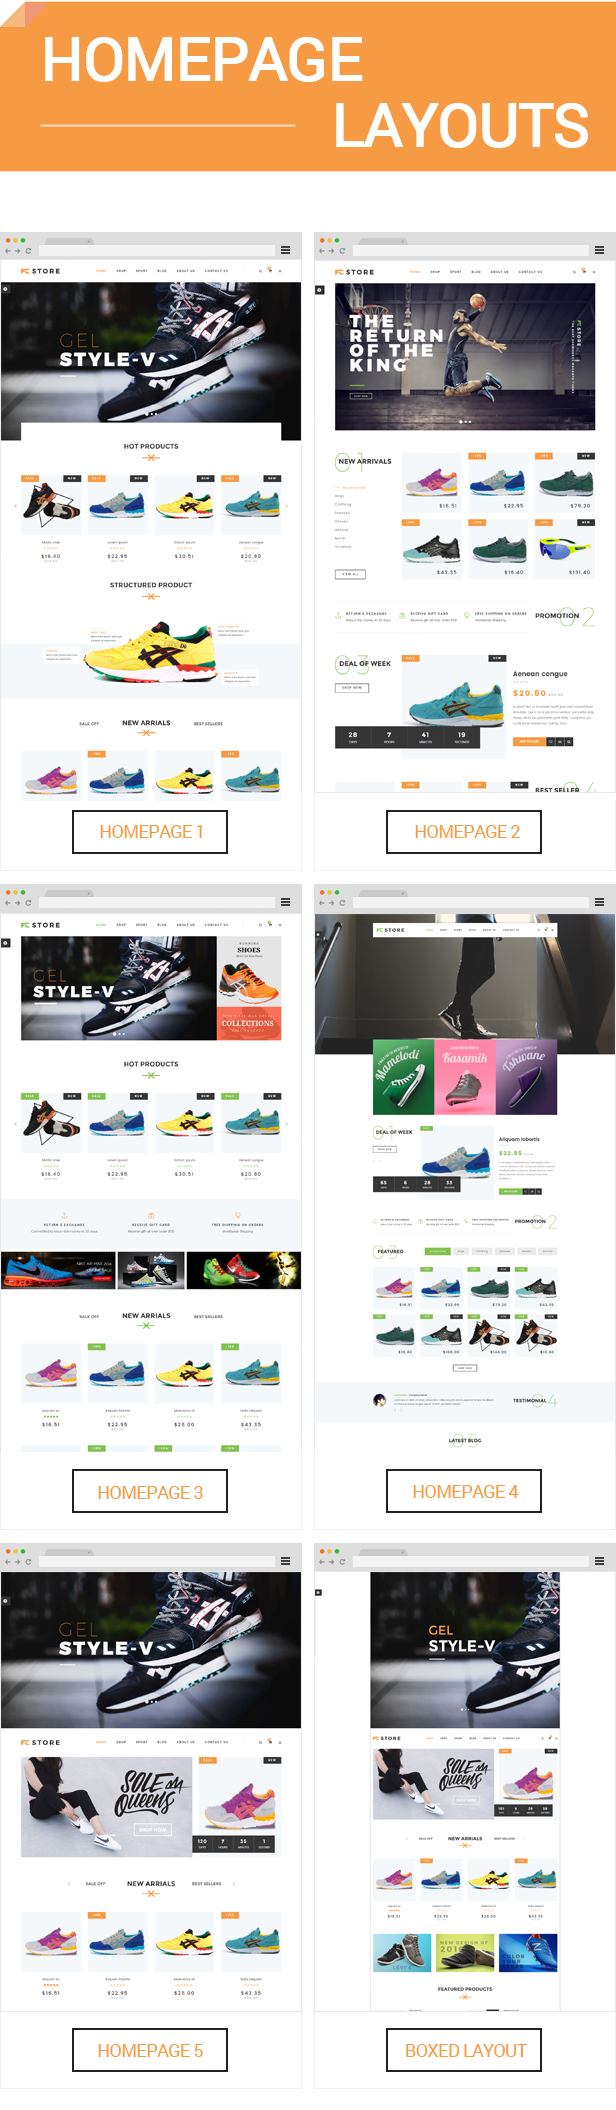 FCstore - Homepage